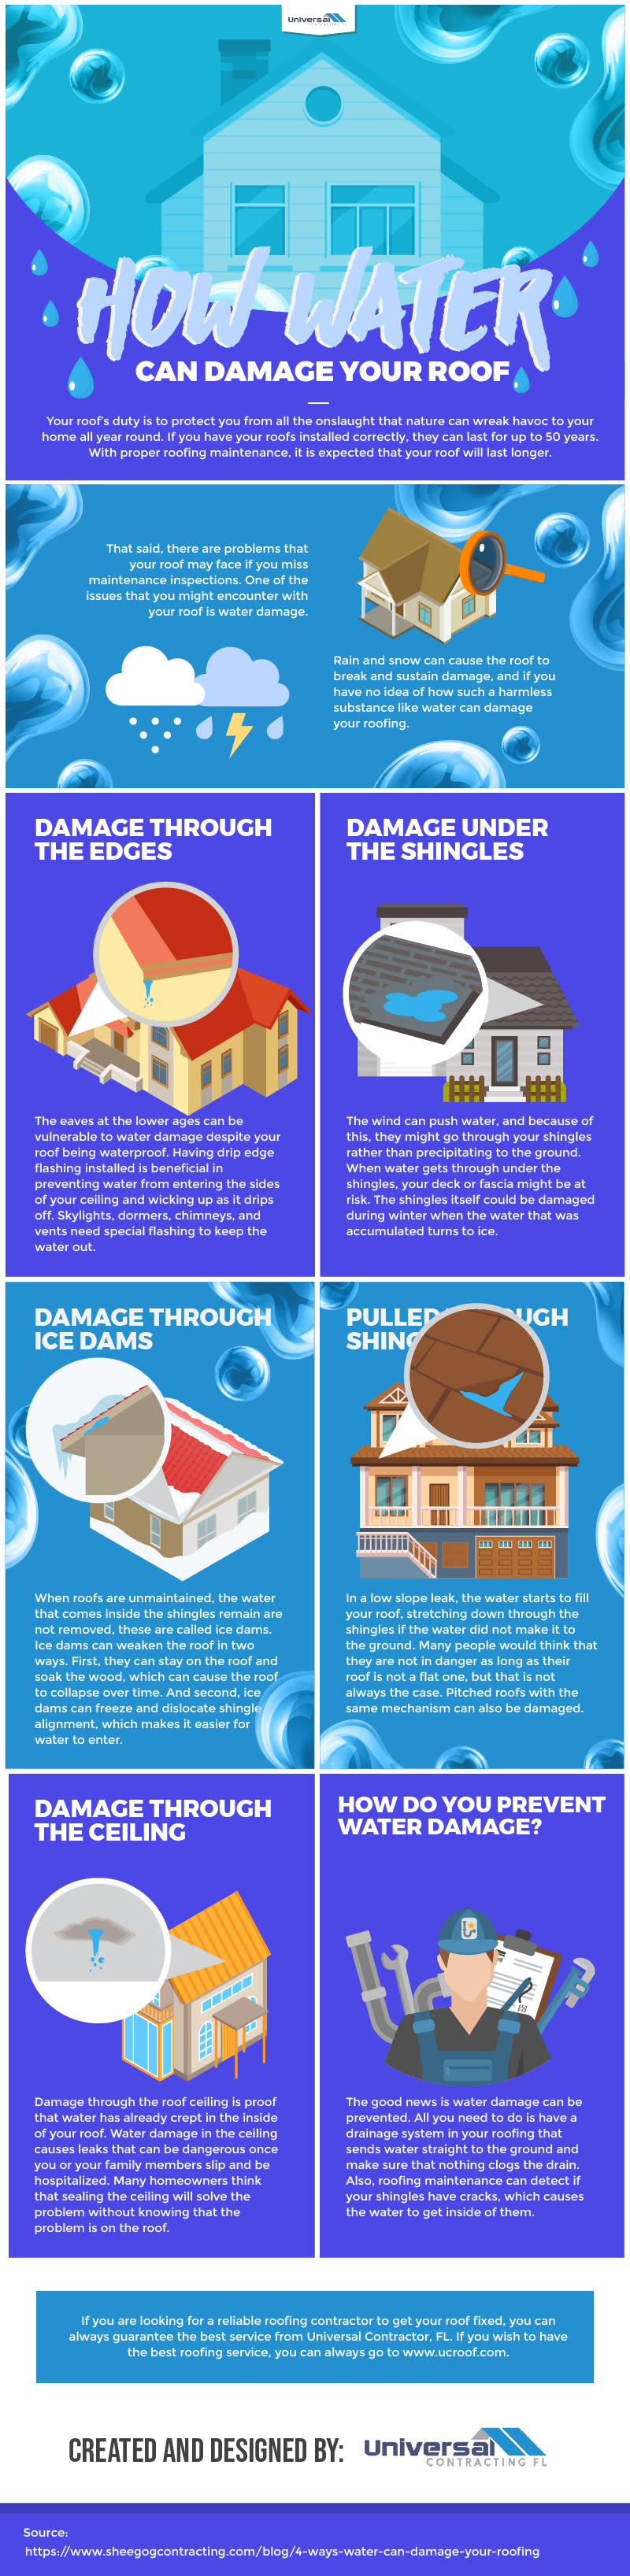 How water can damage your roof - Infographic